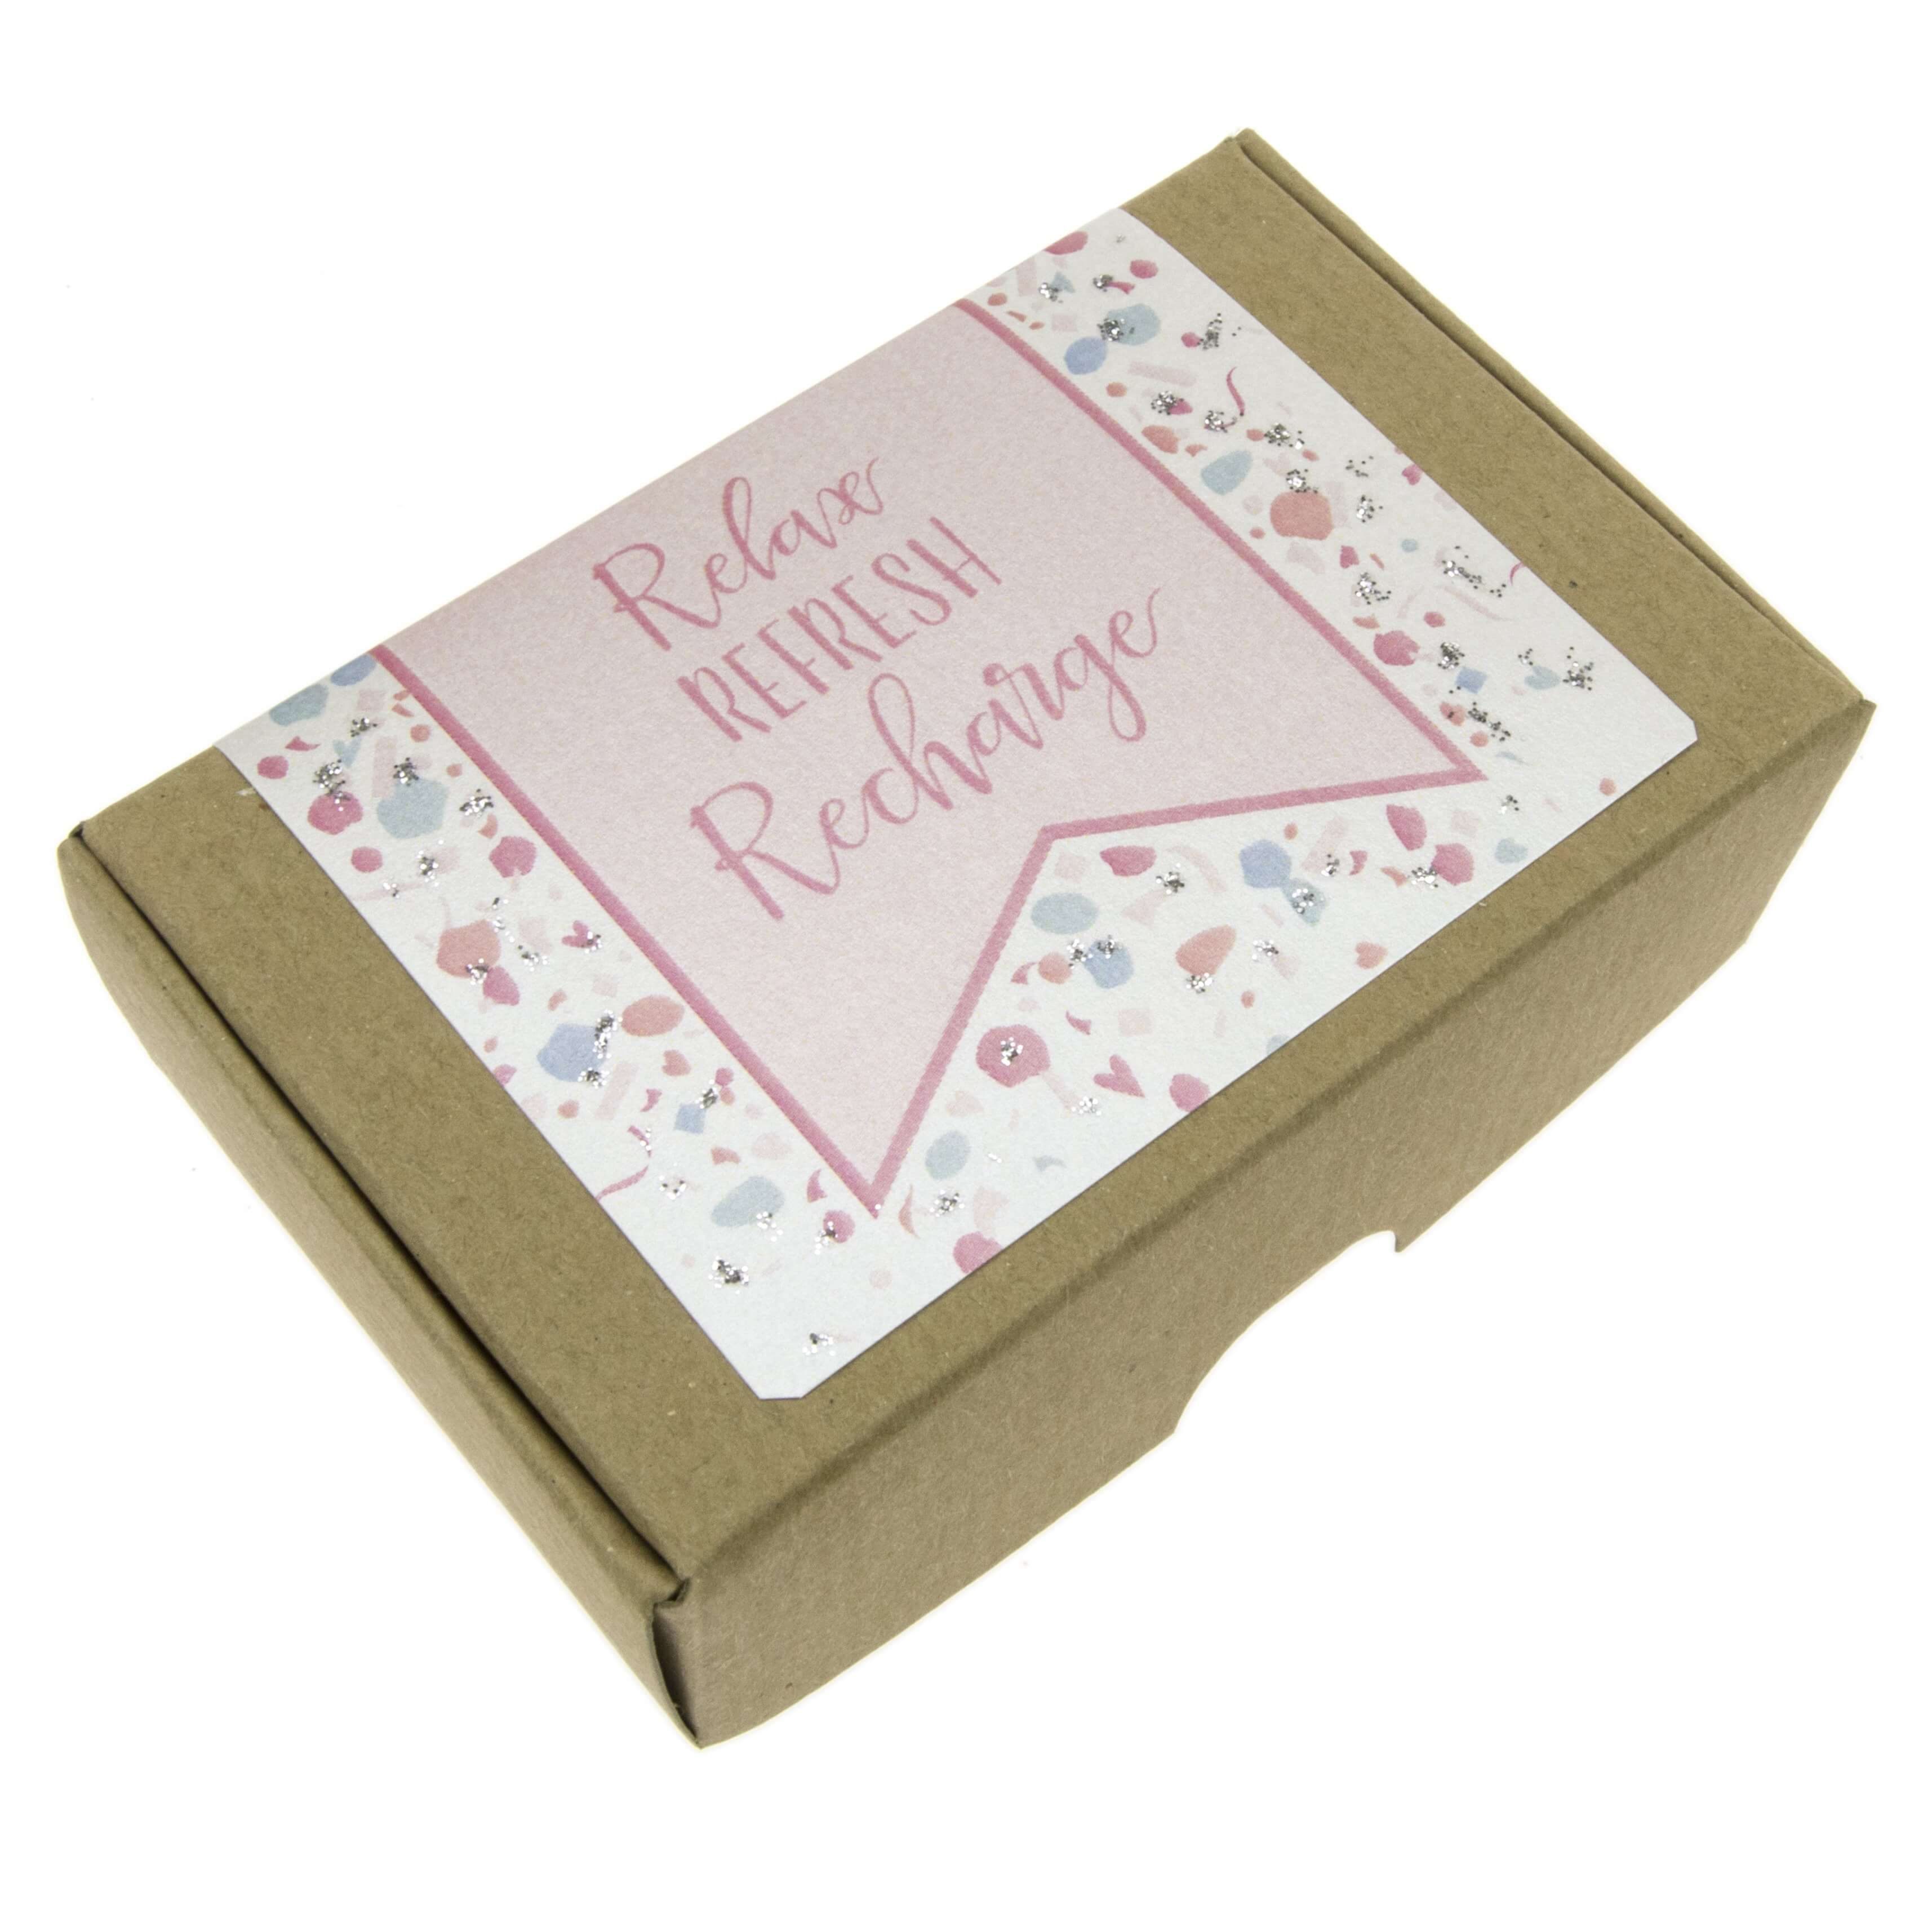 Relax Refresh Recharge Gift Soap